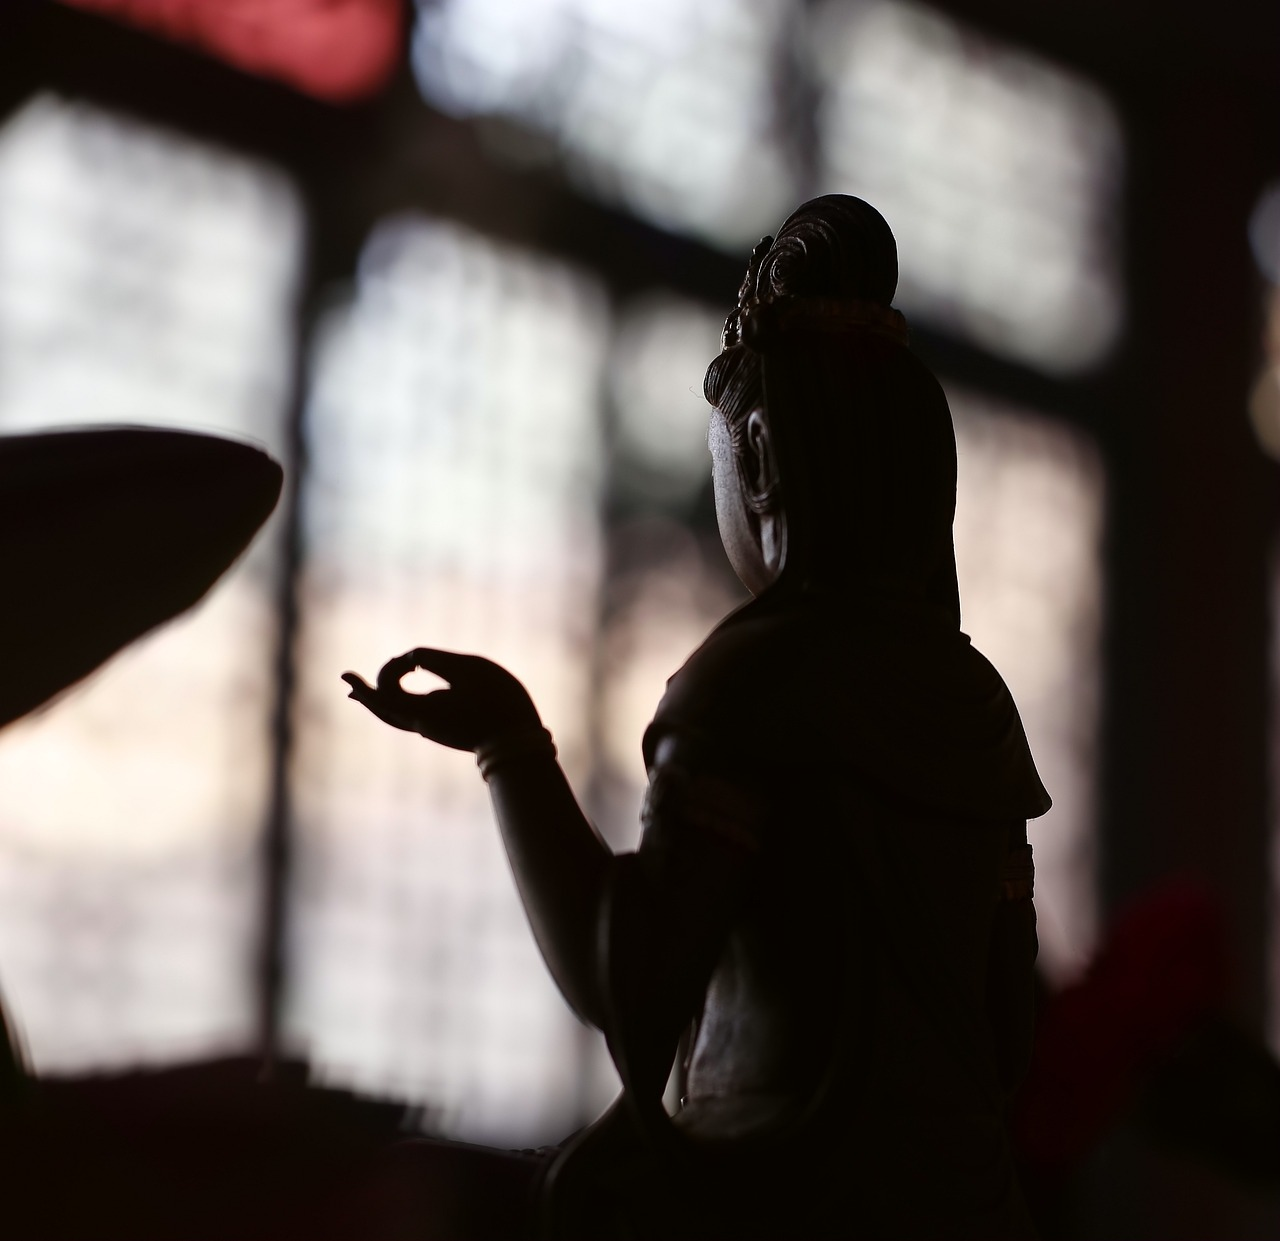 Manjushri in Buddhism is cast as a silhouette.